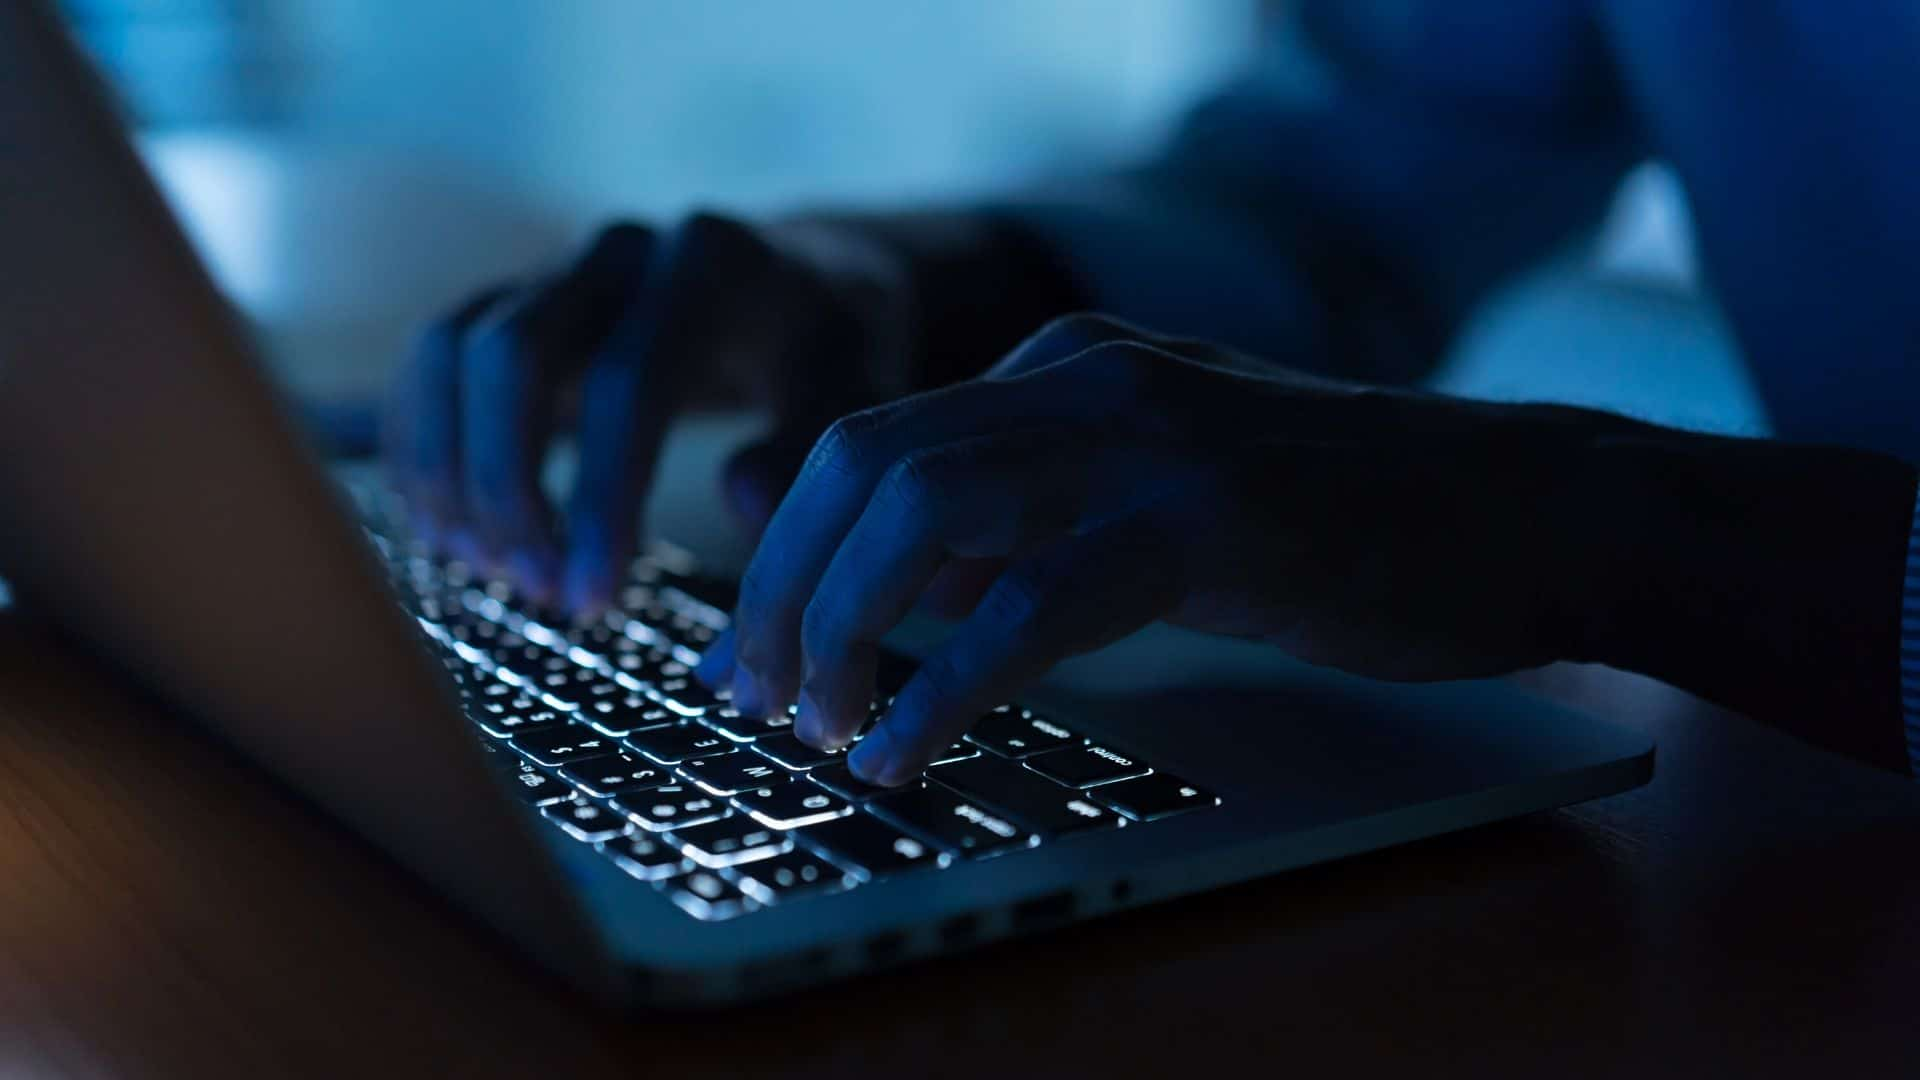 5 Tips to Keep You Cyber-Safe This Buying Season